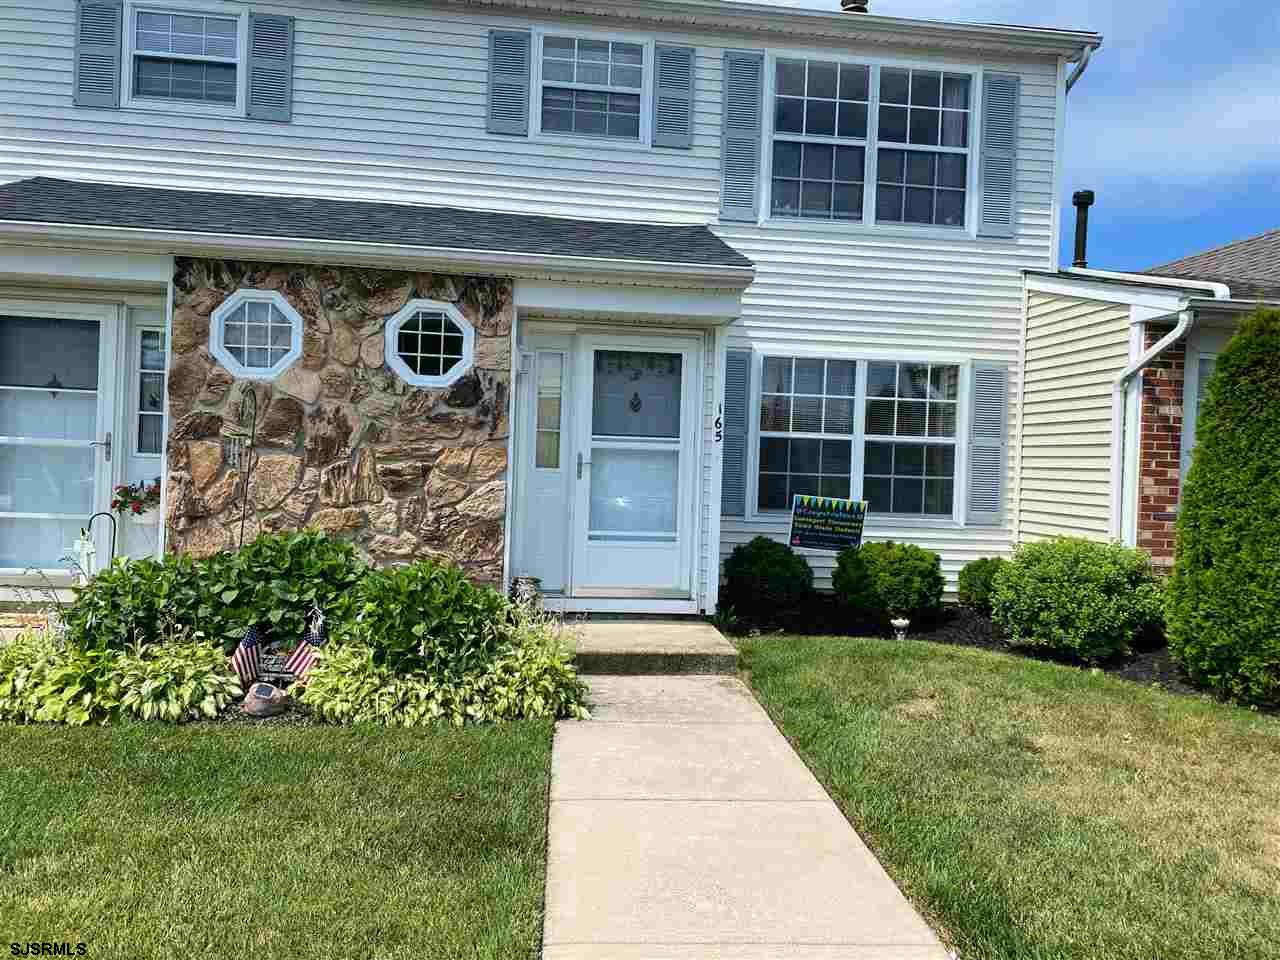 CORNER TWO STORY TOWN HOME IN LONDON CT!! Rare and very spacious 2 bedrooms 2.5 bath unit featuring